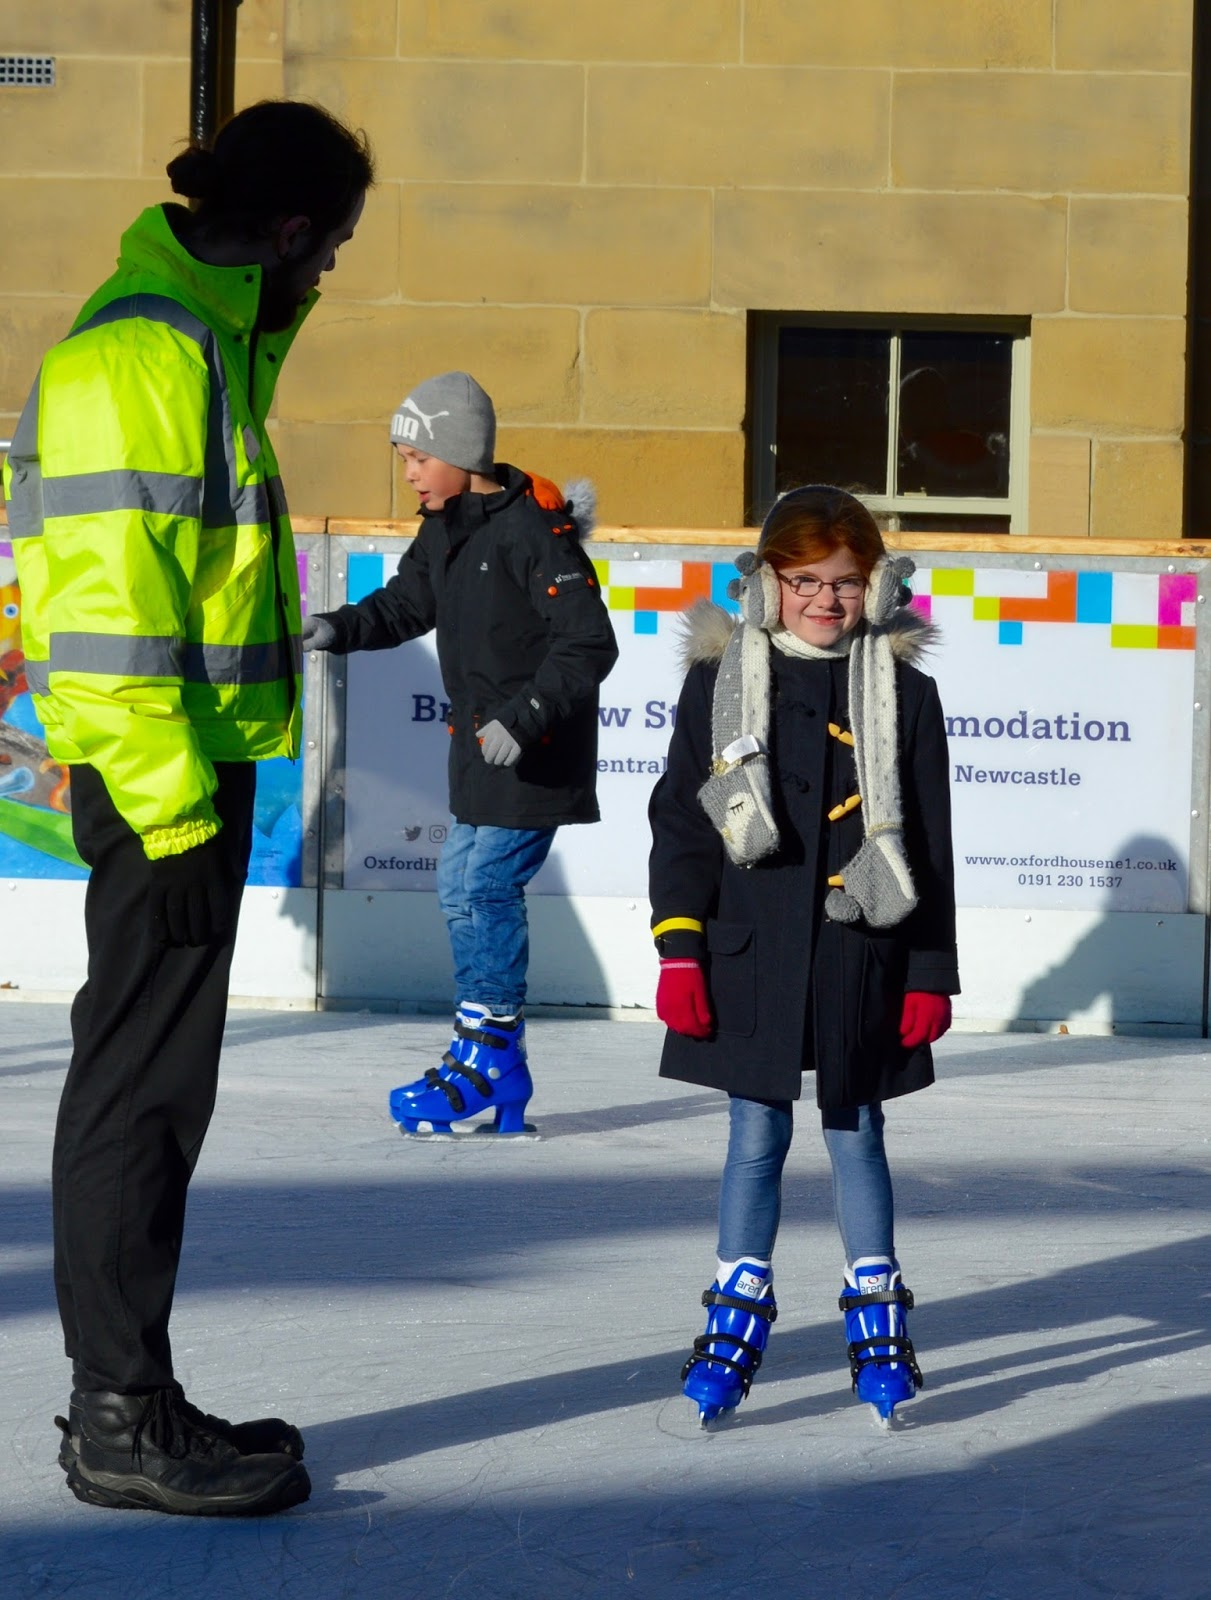 New Year's Eve Skating at Life -10+ Child-Friendly New Year's Eve Parties & Events across North East England 2019/20